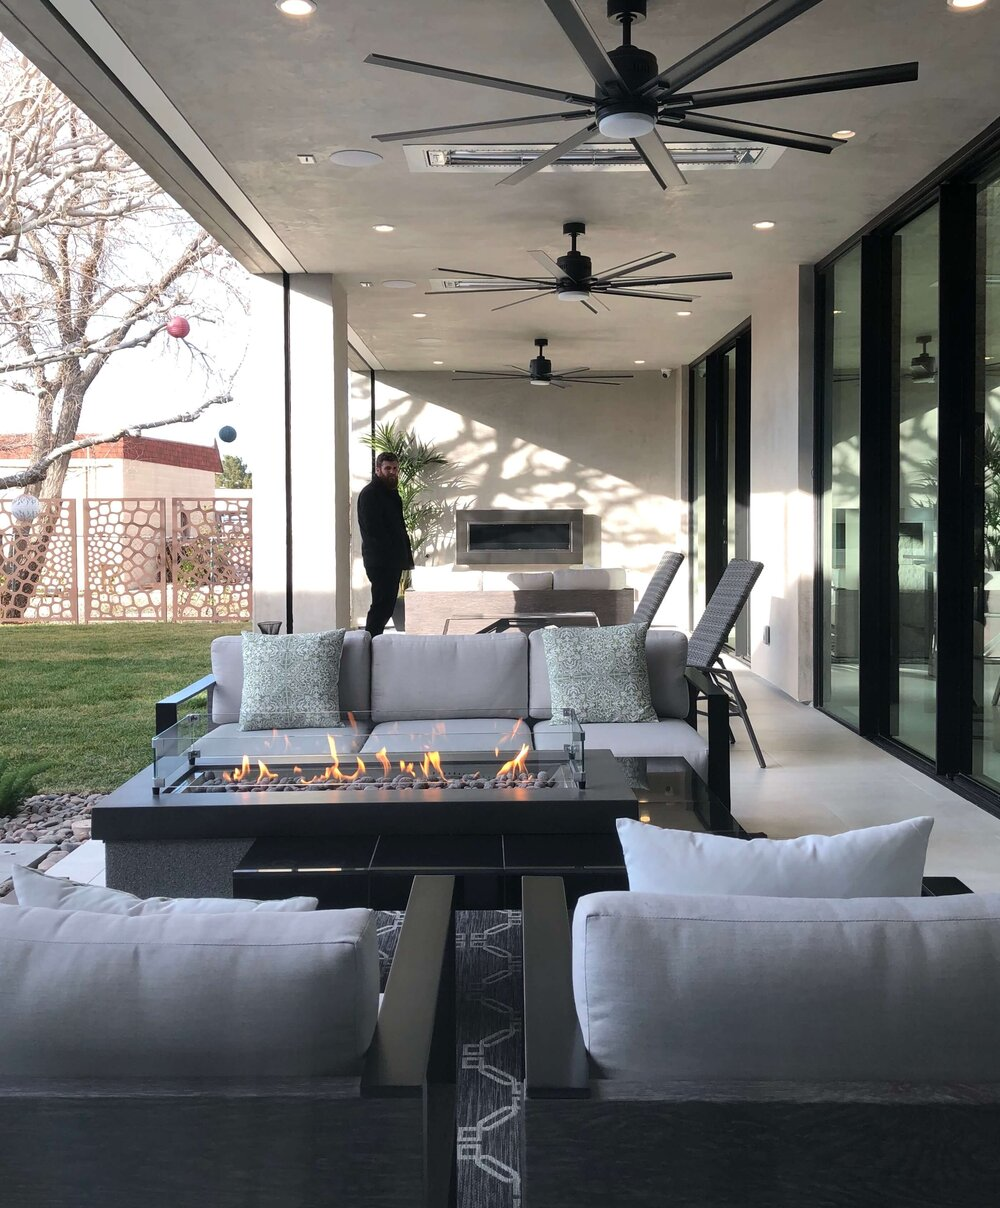 Contemporary outdoor living oasis at The New American Remodel TNAR | #remodeling #remodel #outdoorliving #patio #pool #outdoorfirepit